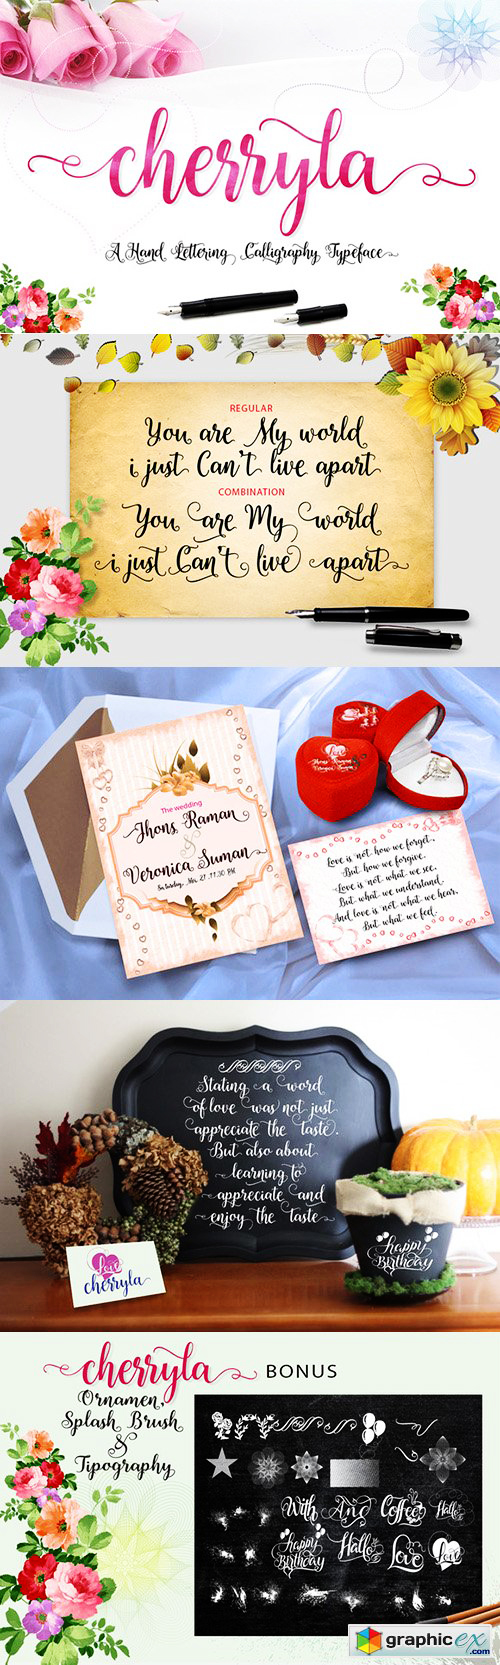 cursive fonts for wedding cards%0A  u    Cherryla Font u     by graphicex       registration required